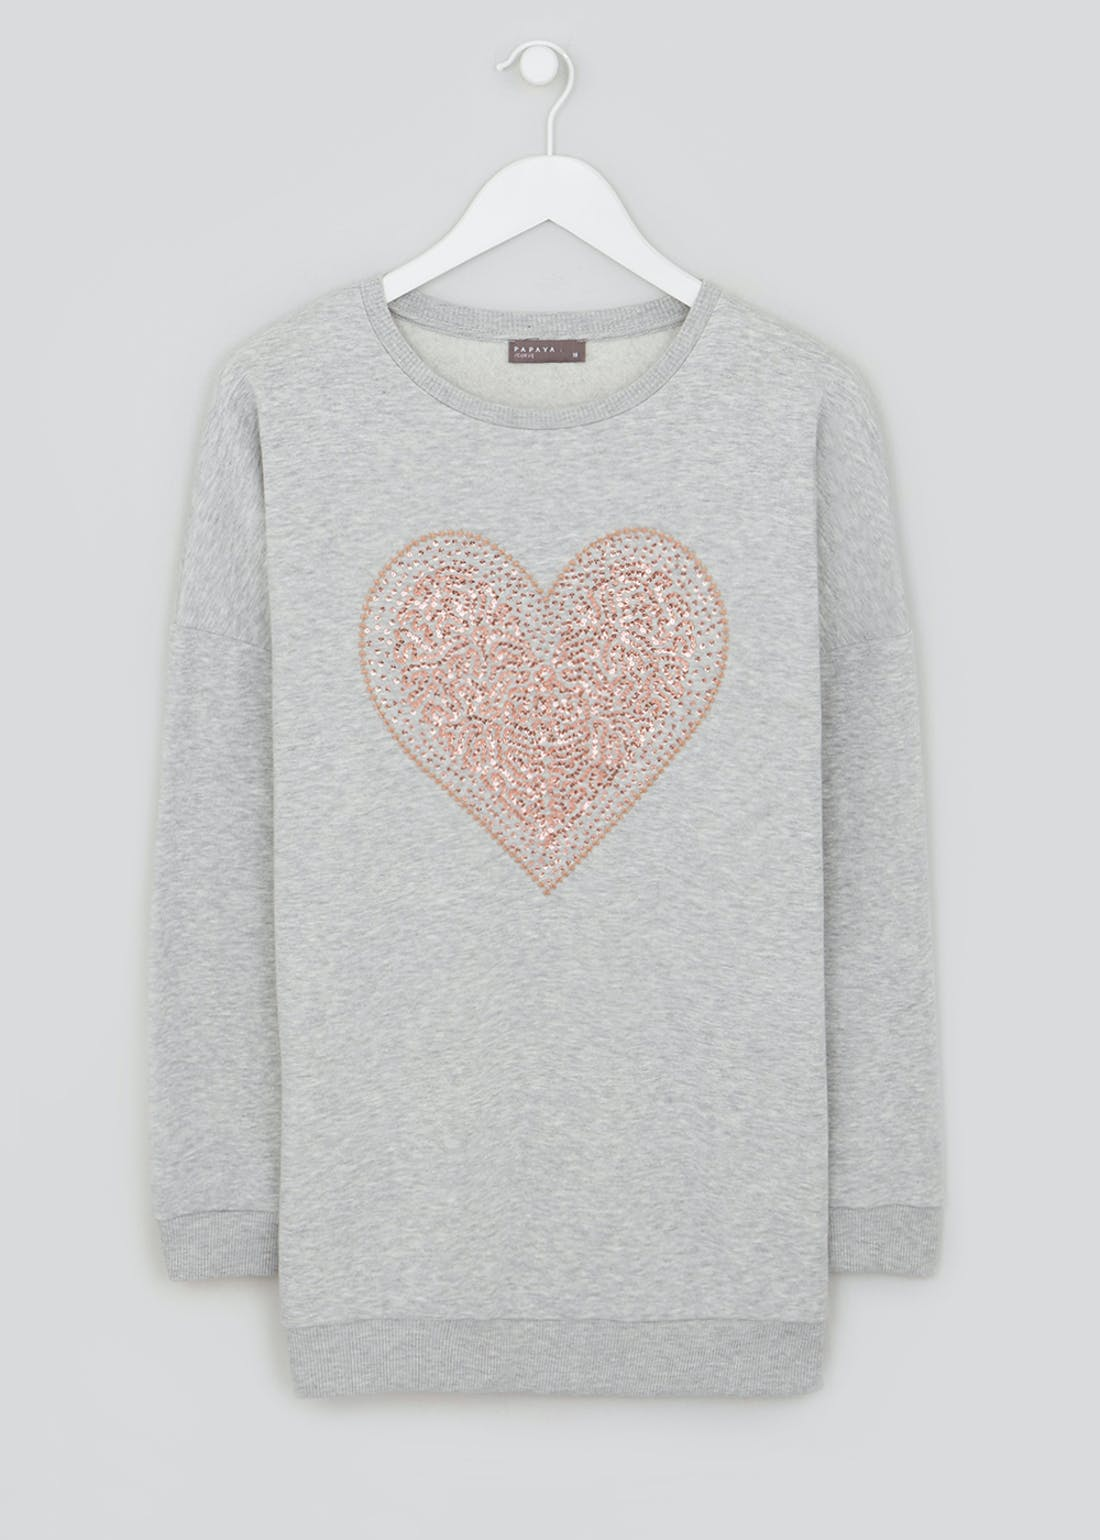 Papaya Curve Heart Stud Sweatshirt